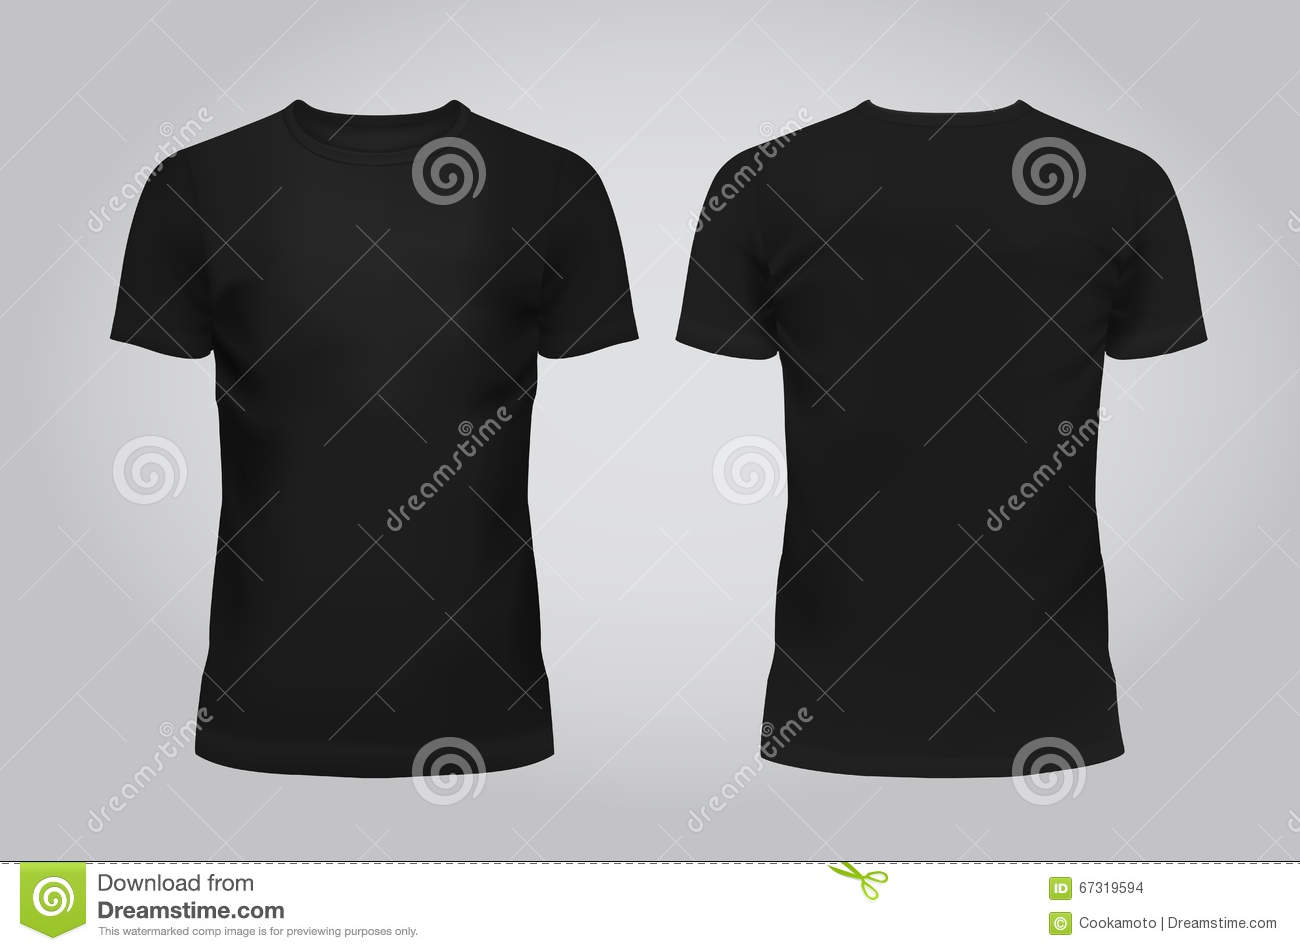 Black t shirt back and front - Vector Illustration Of Design Template Black Men T Shirt Front And Back On A